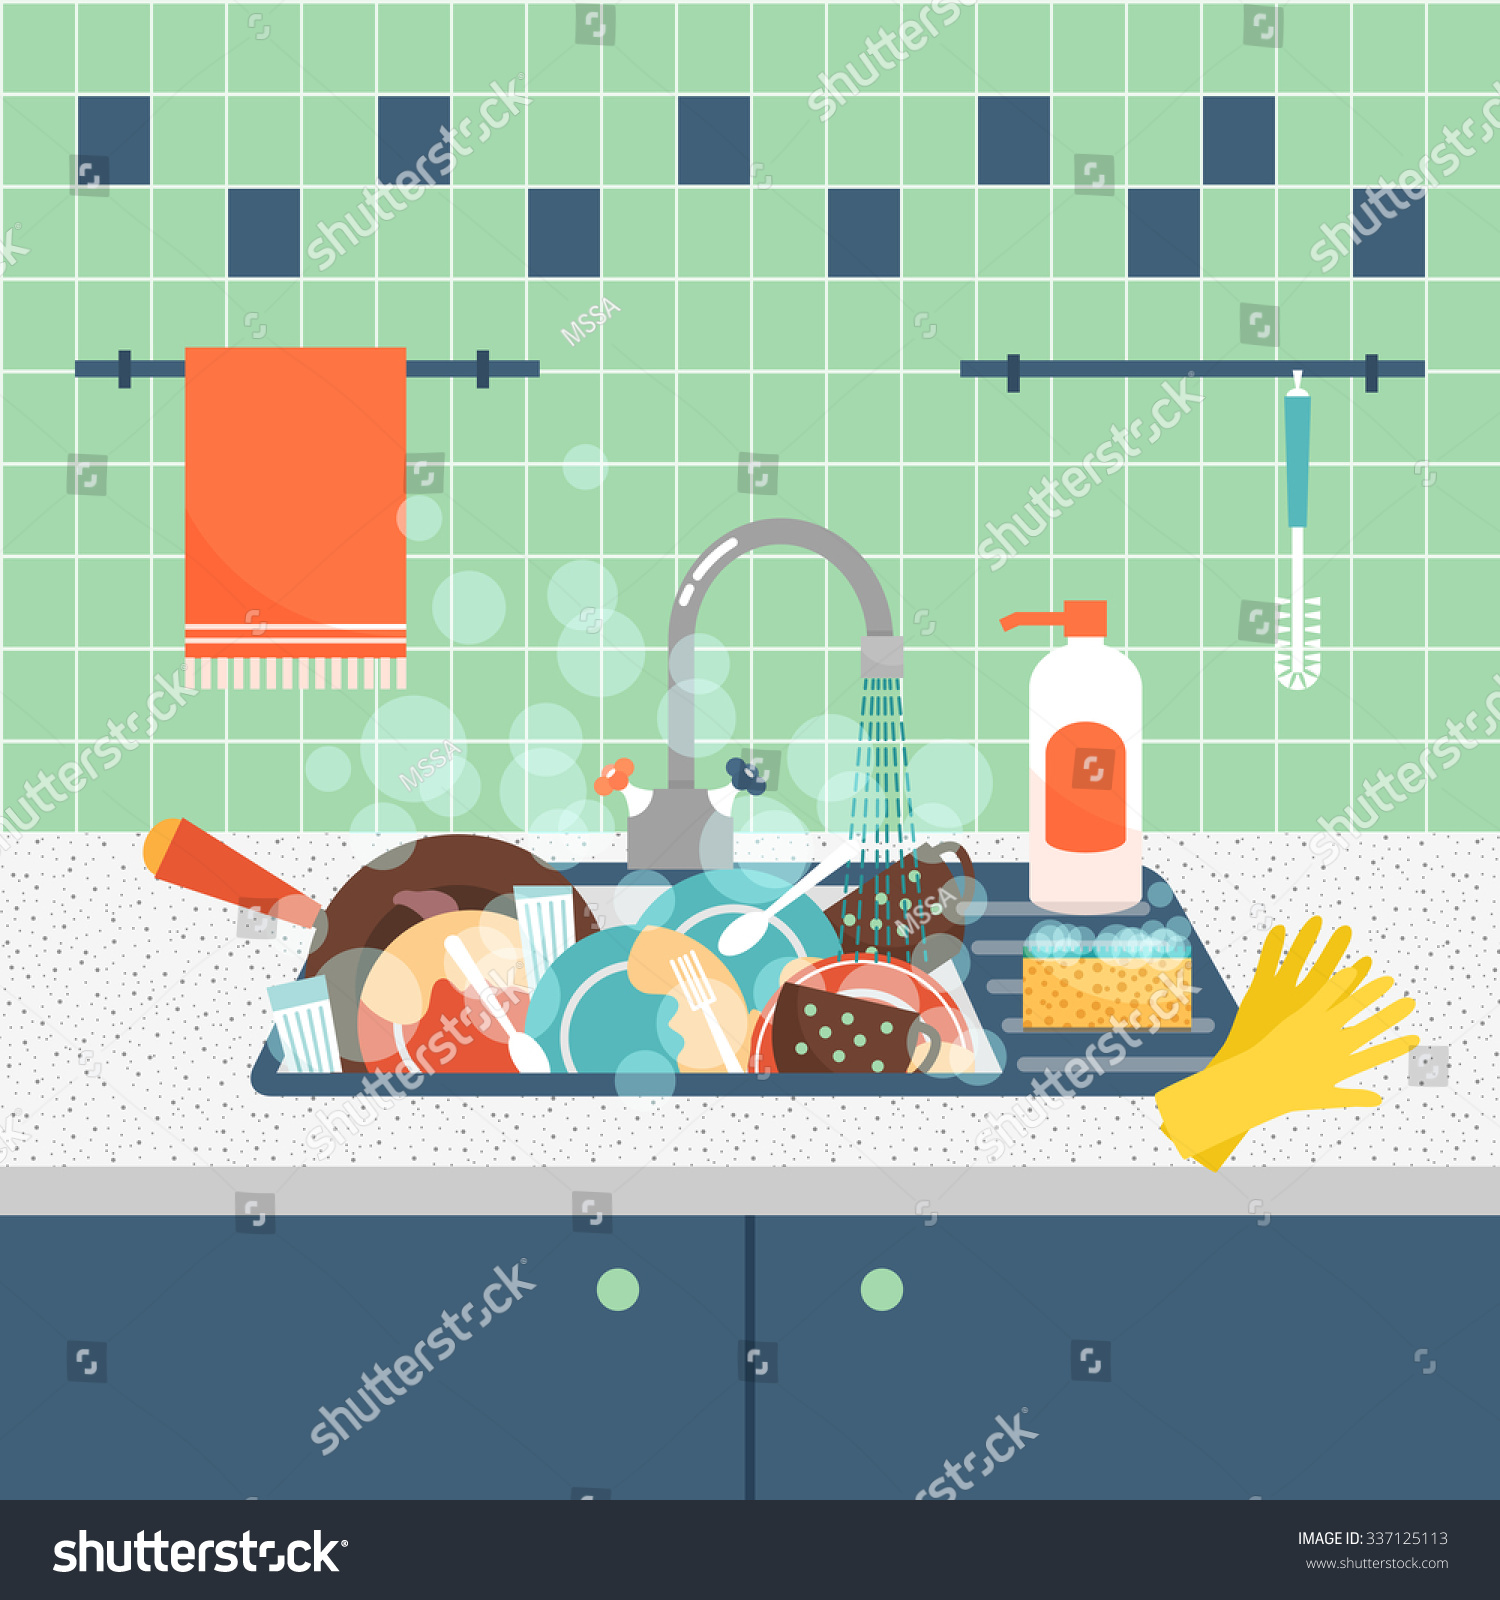 Kitchen Sink With Dishes kitchen sink dirty kitchenware dishes mess stock vector 337125113